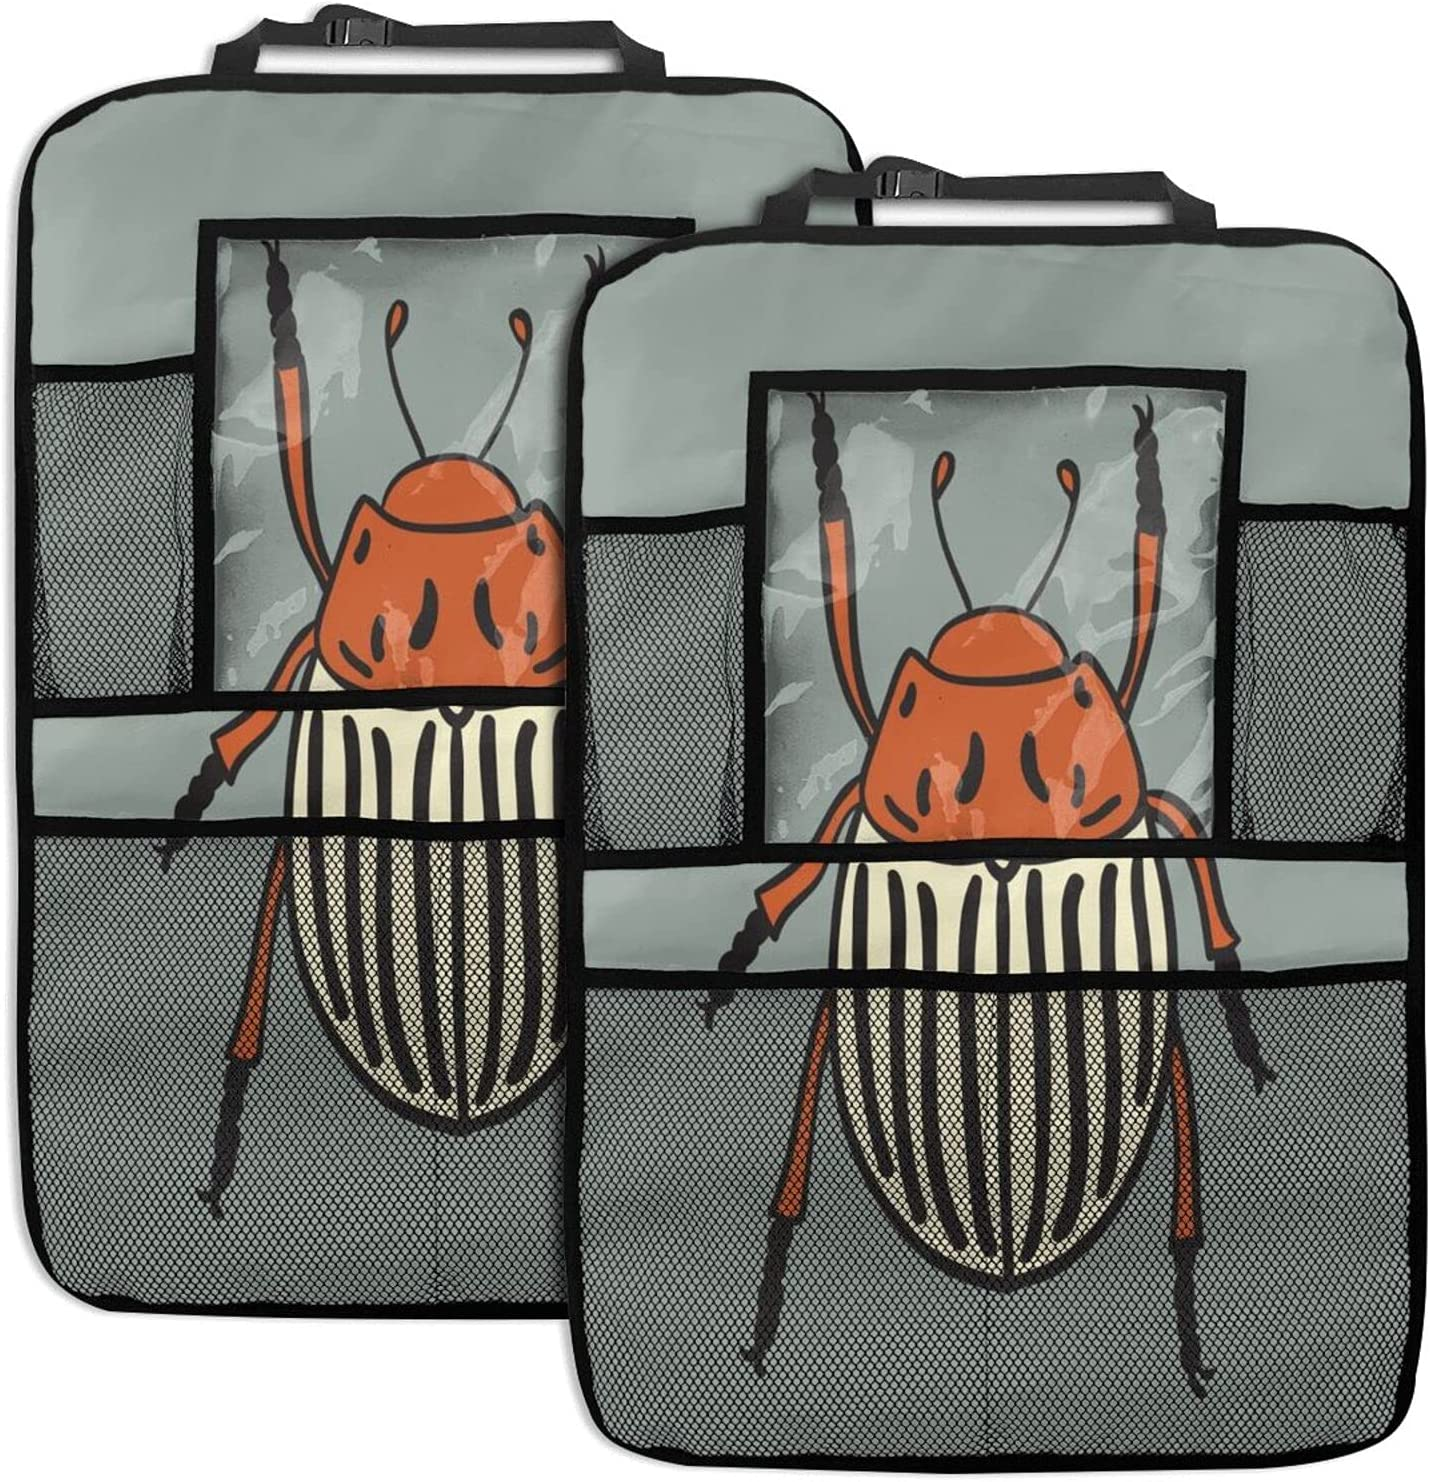 IBILIU Potato Beetle Back Seat Limited time sale Protector 2 Bu Insect Flying Pack Detroit Mall